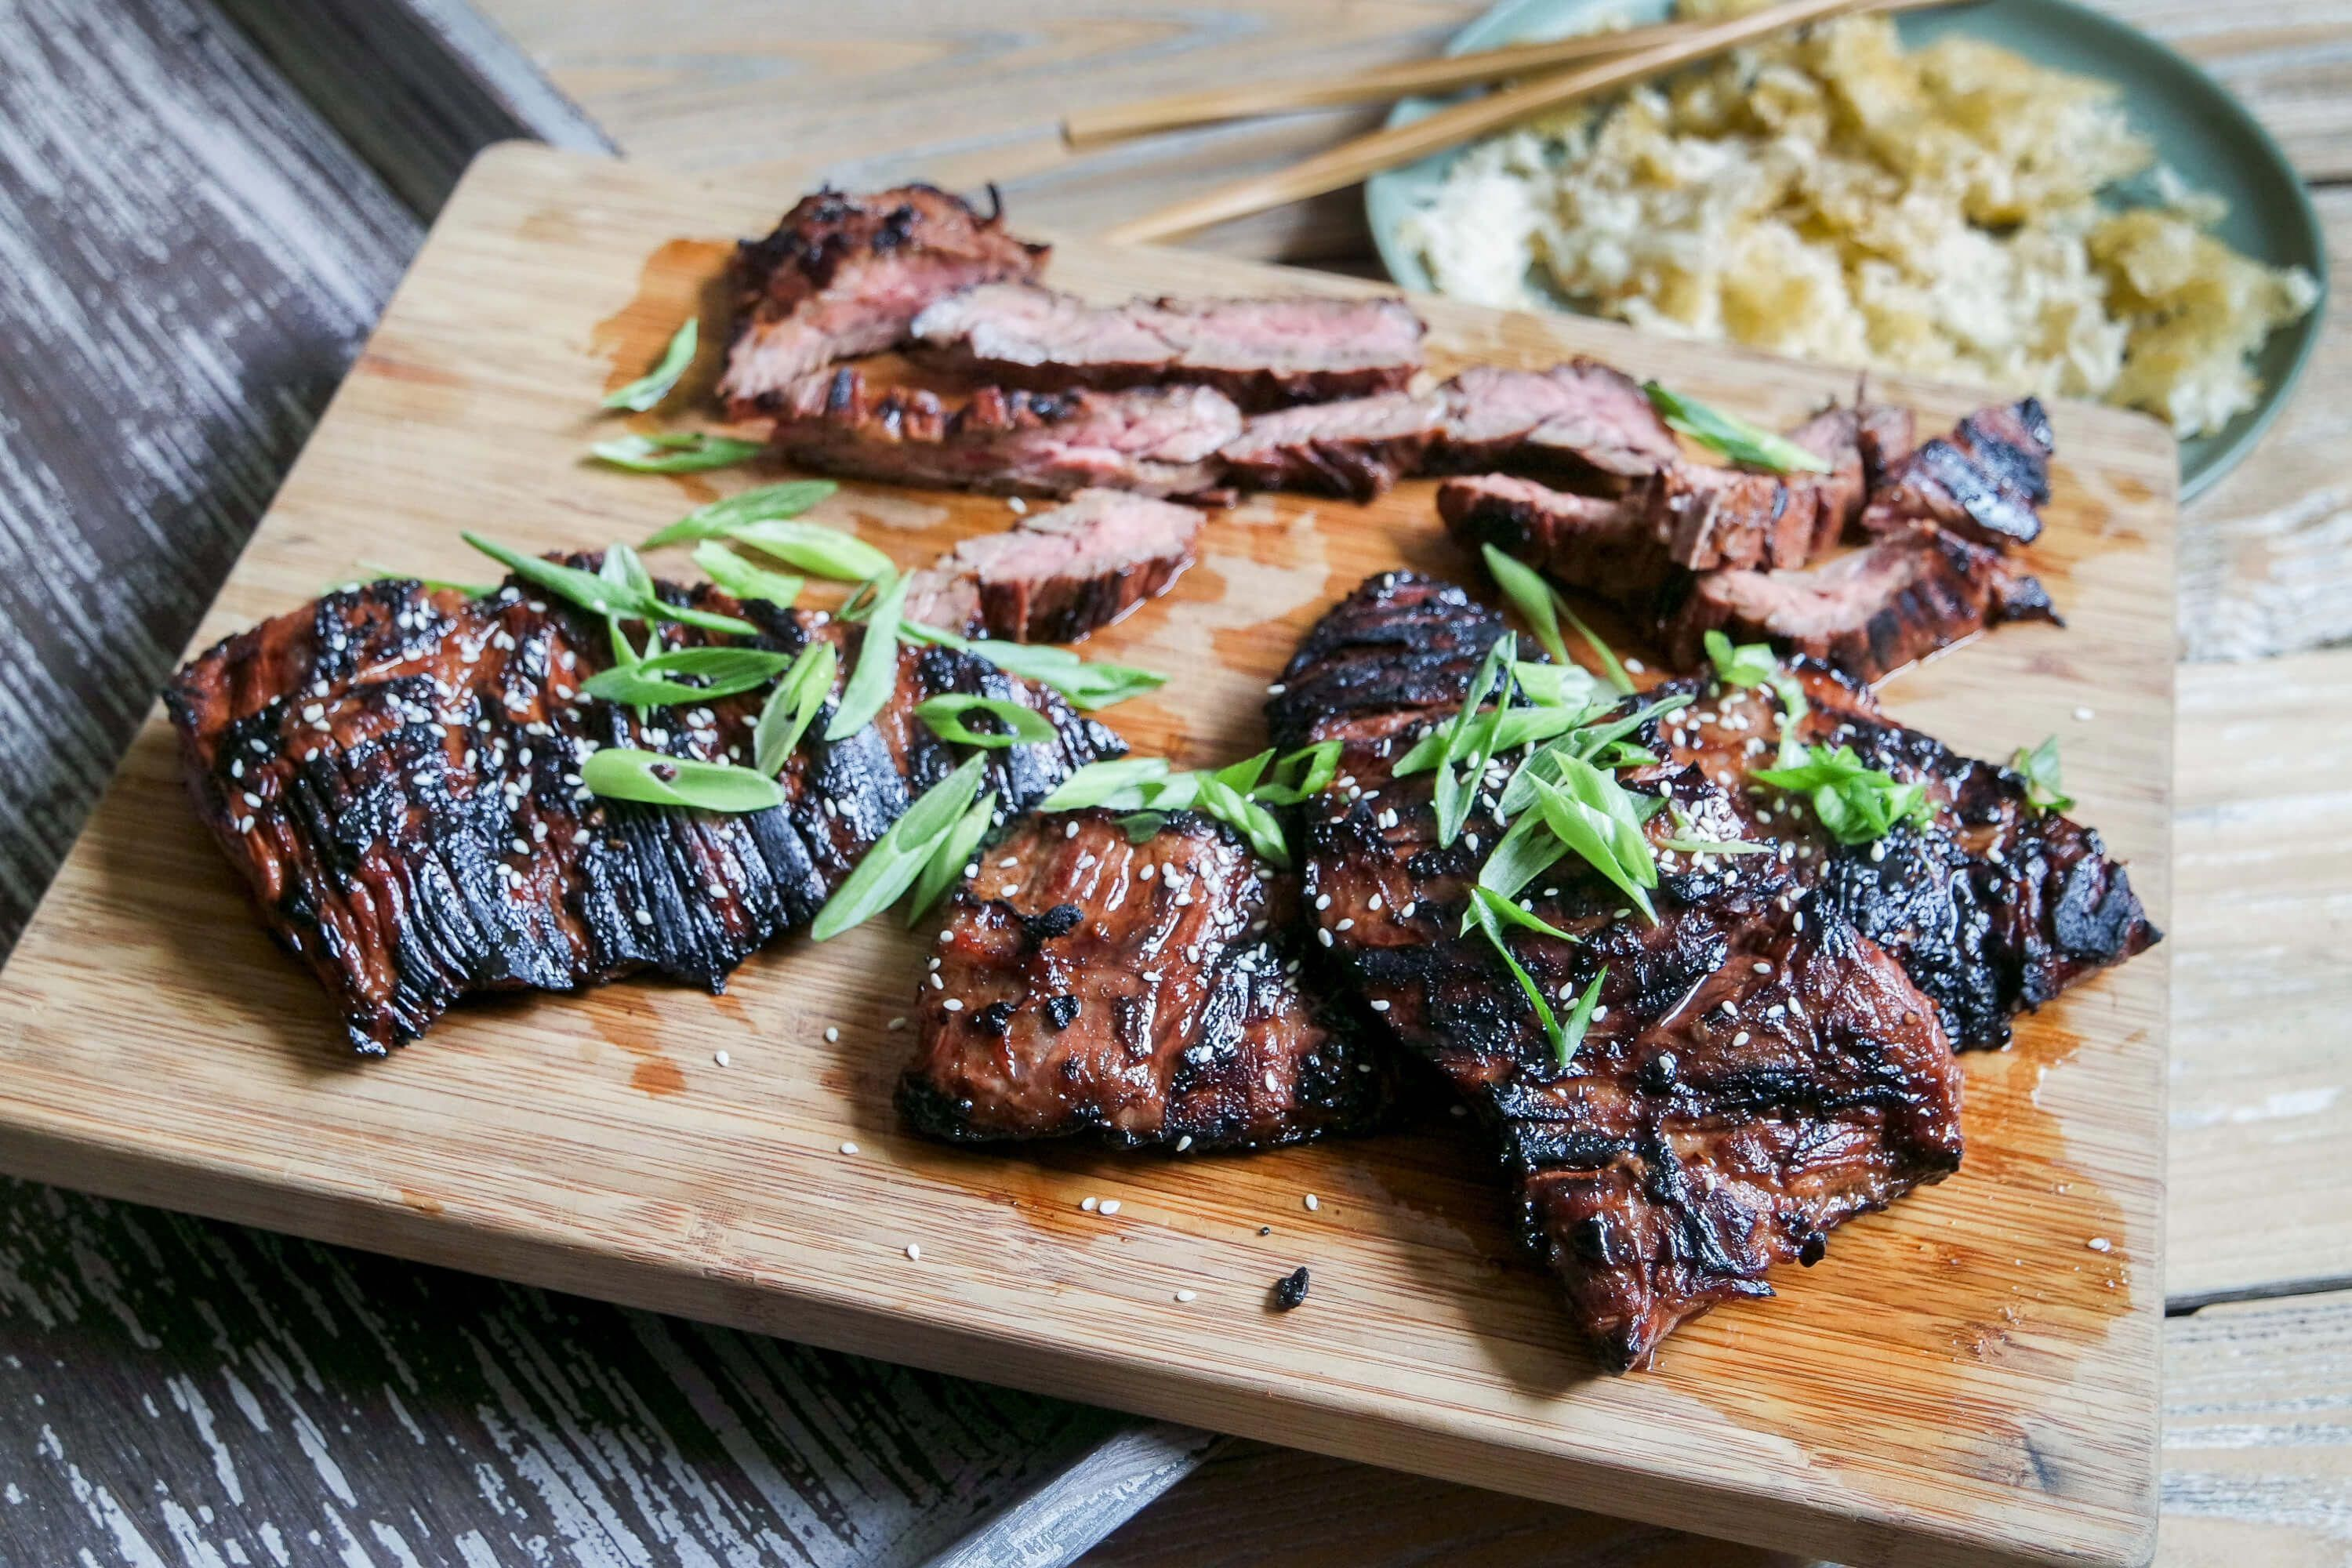 A soy and sriracha marinade lends a salty, umami punch with a hint of sweetness. Paired with crispy rice, this Asian Marinated Grilled Skirt Steak is hard to beat. #grilledsteak #marinadeforskirtsteak